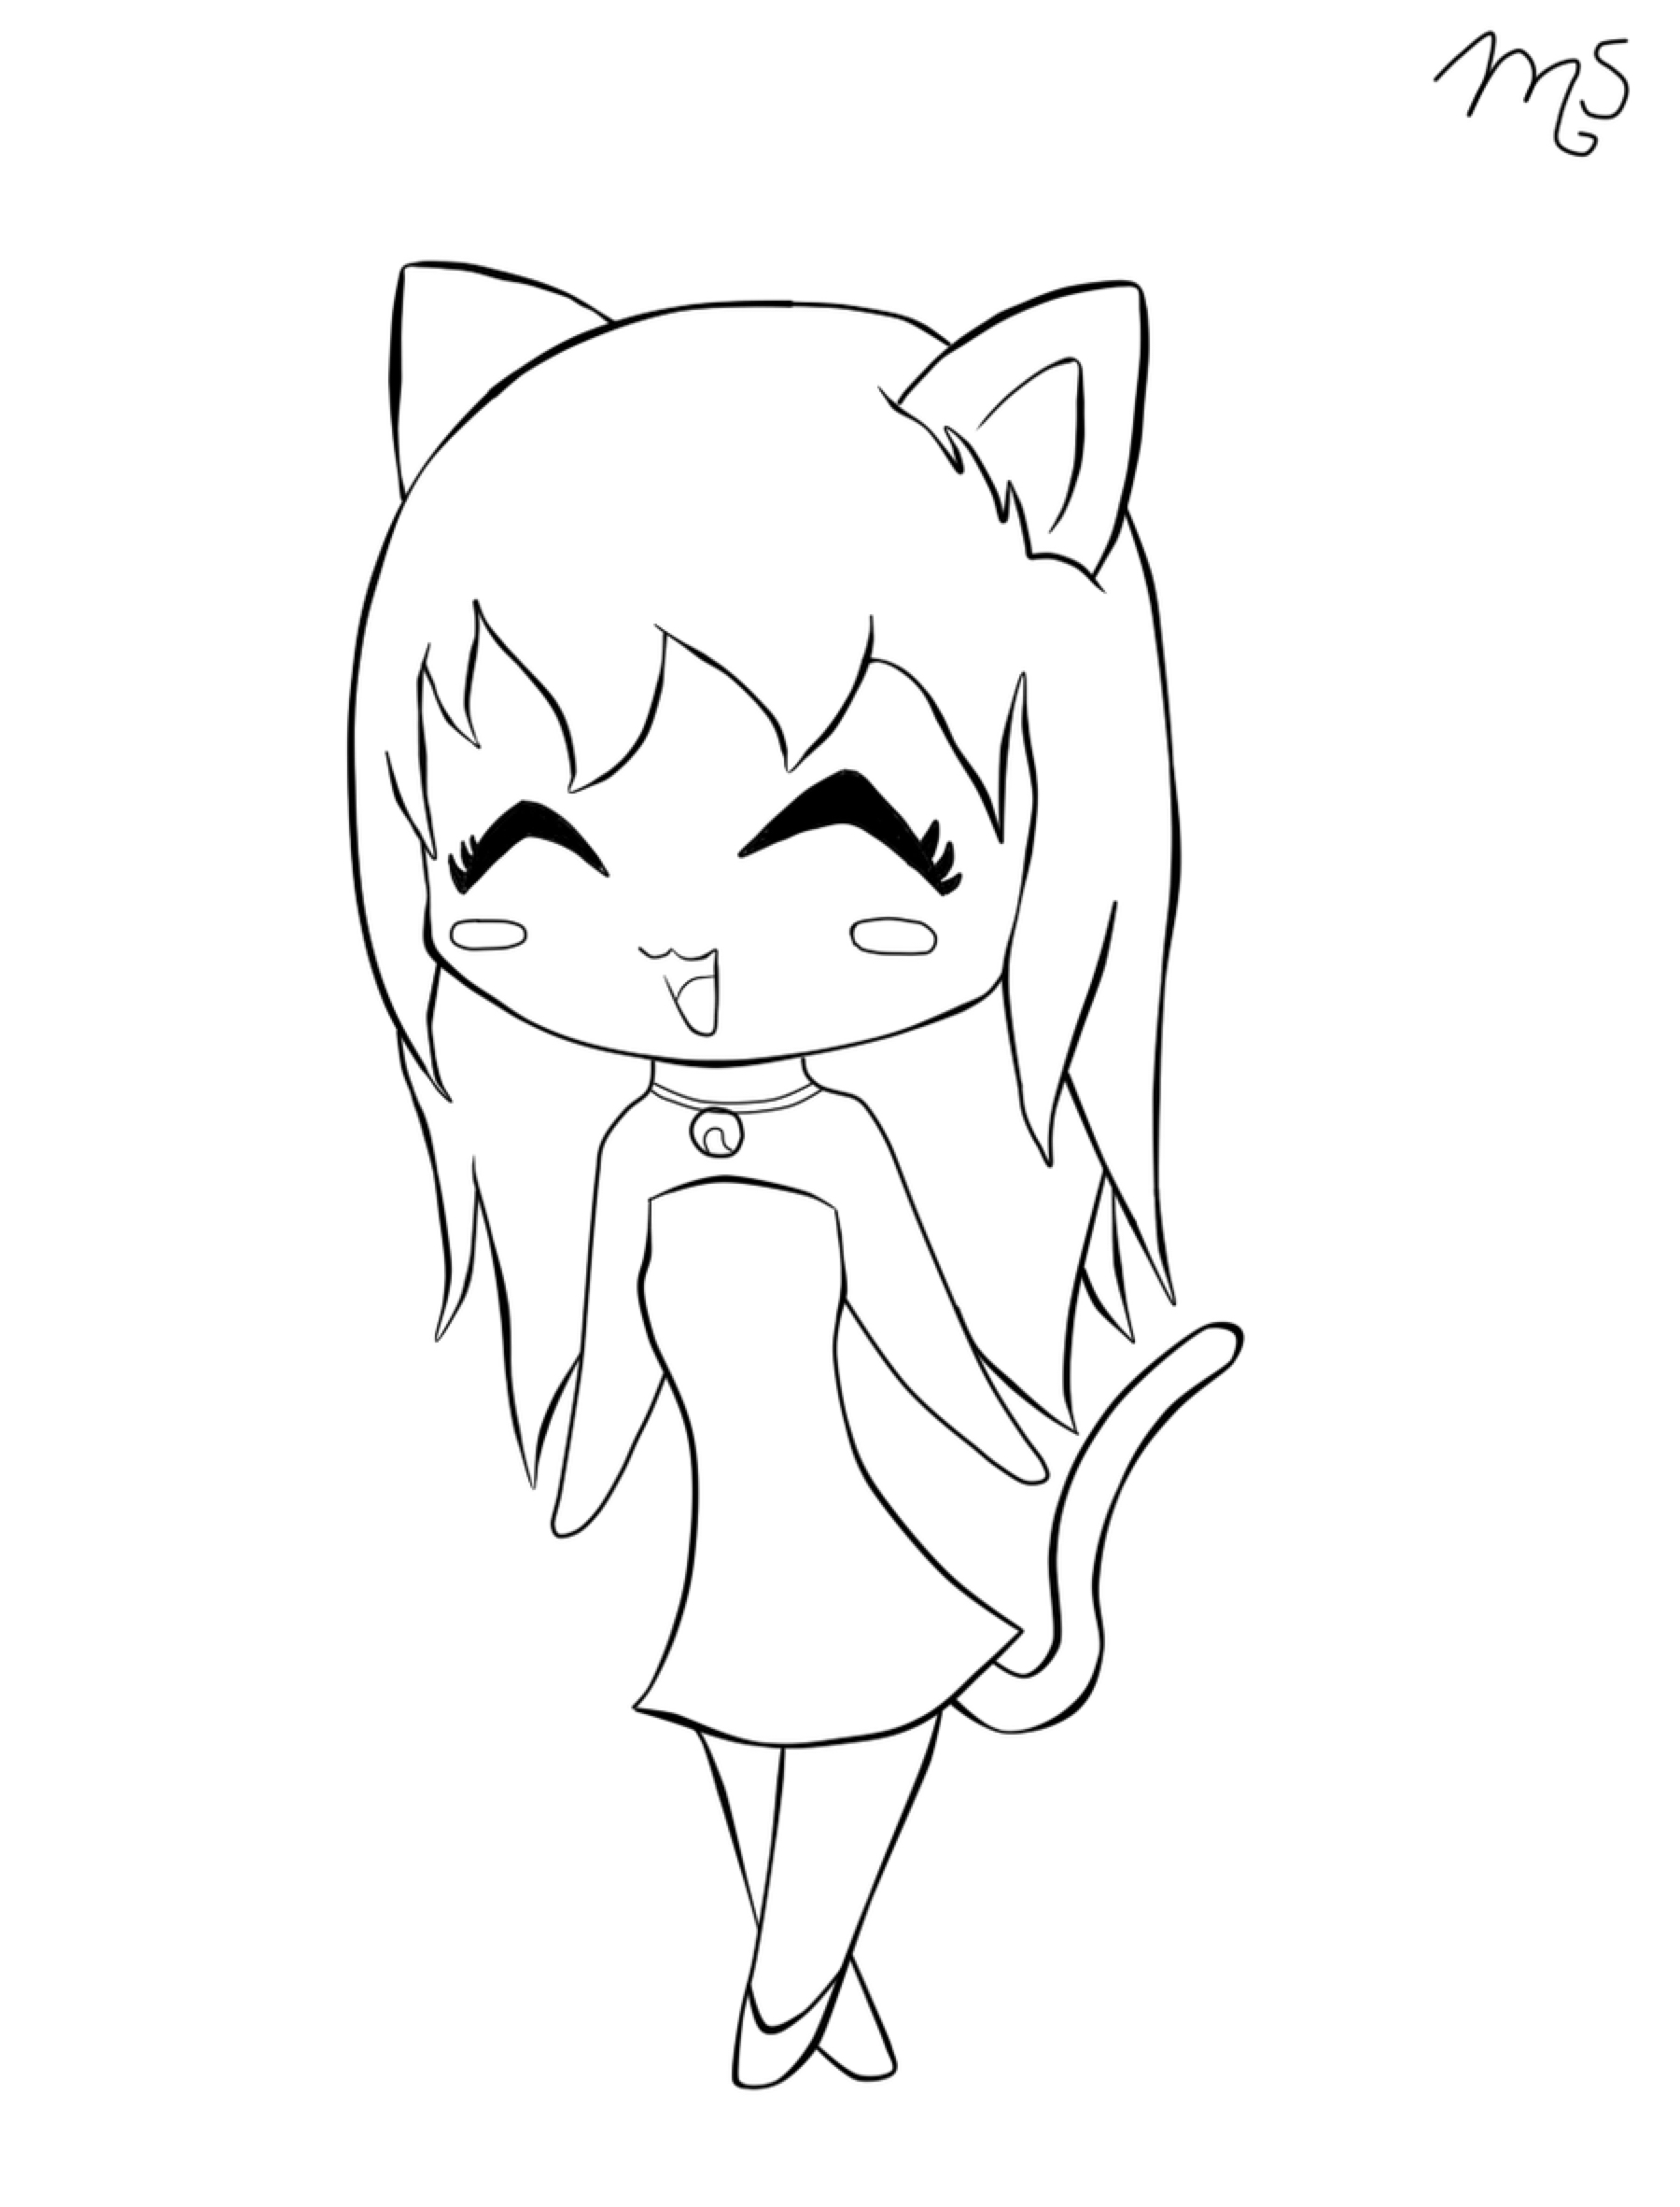 1800x2364 Chibi Neko Girl Lineart By Tawiie On @ Line Art